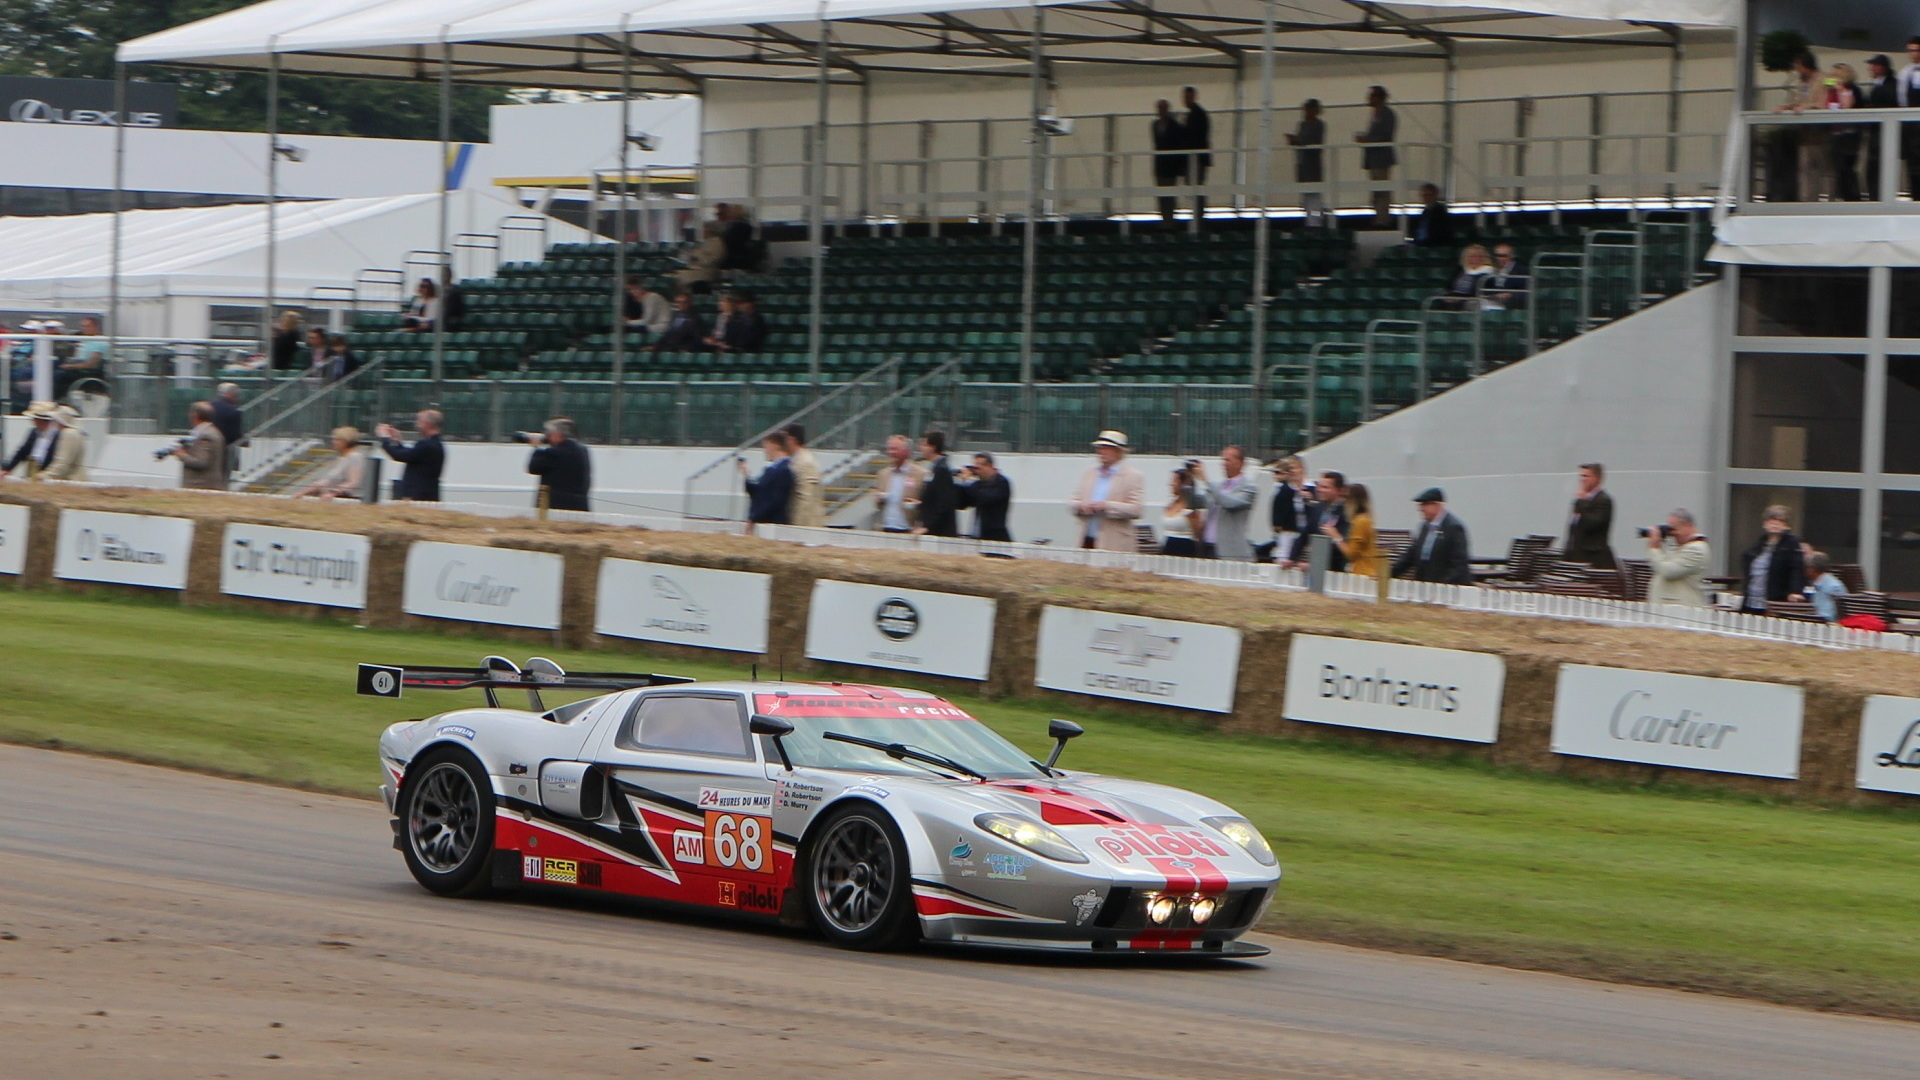 Ford GT LM GTE at 2016 Goodwood Festival of Speed